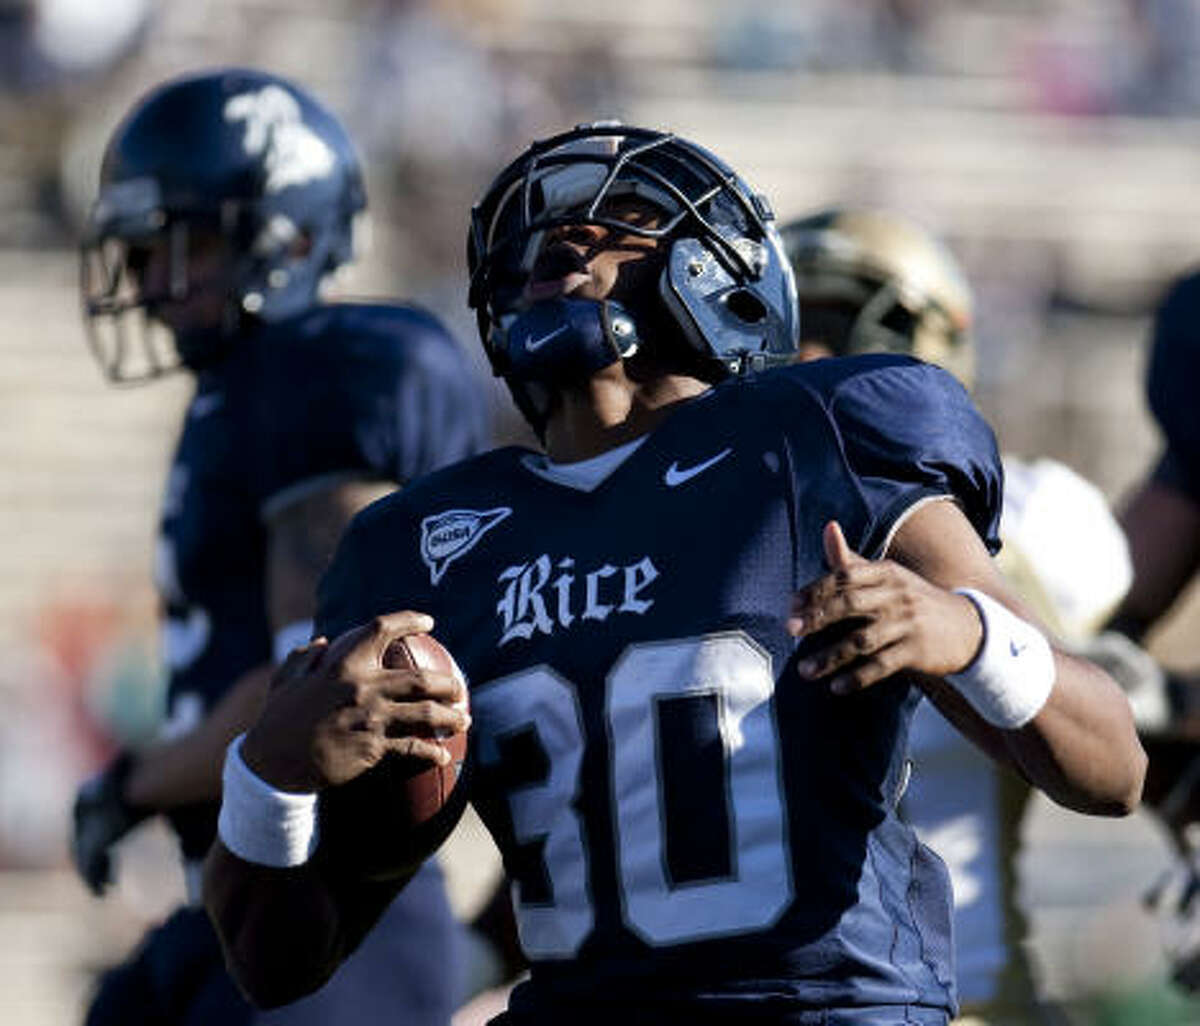 Rice running back Jeremy Eddington rejoyces as he easily scores a touchdown from the Wildcat formation in the second quarter.